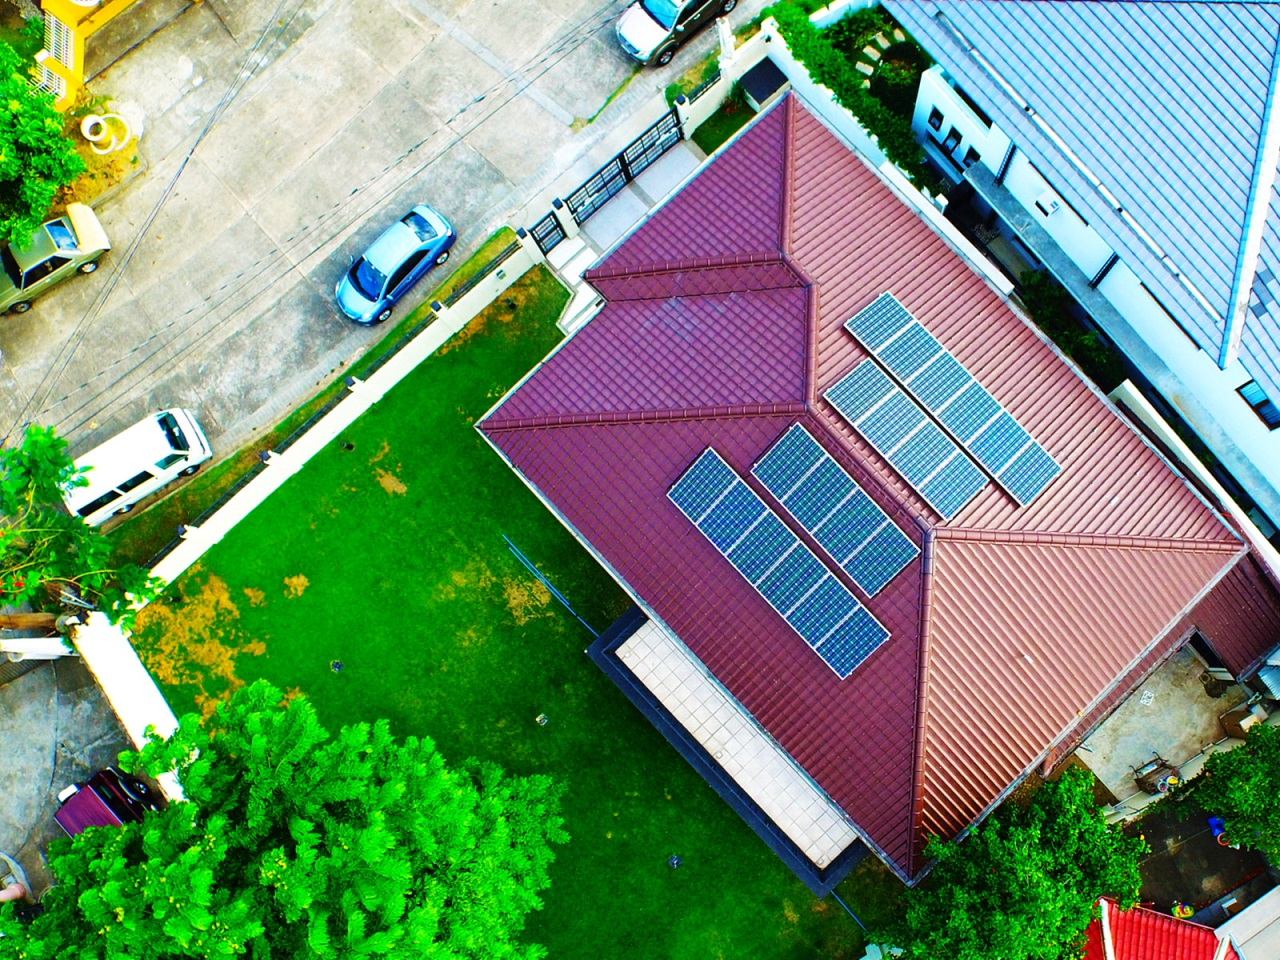 TOP SHOT OF A HOUSE WITH SOLAR ROOFING